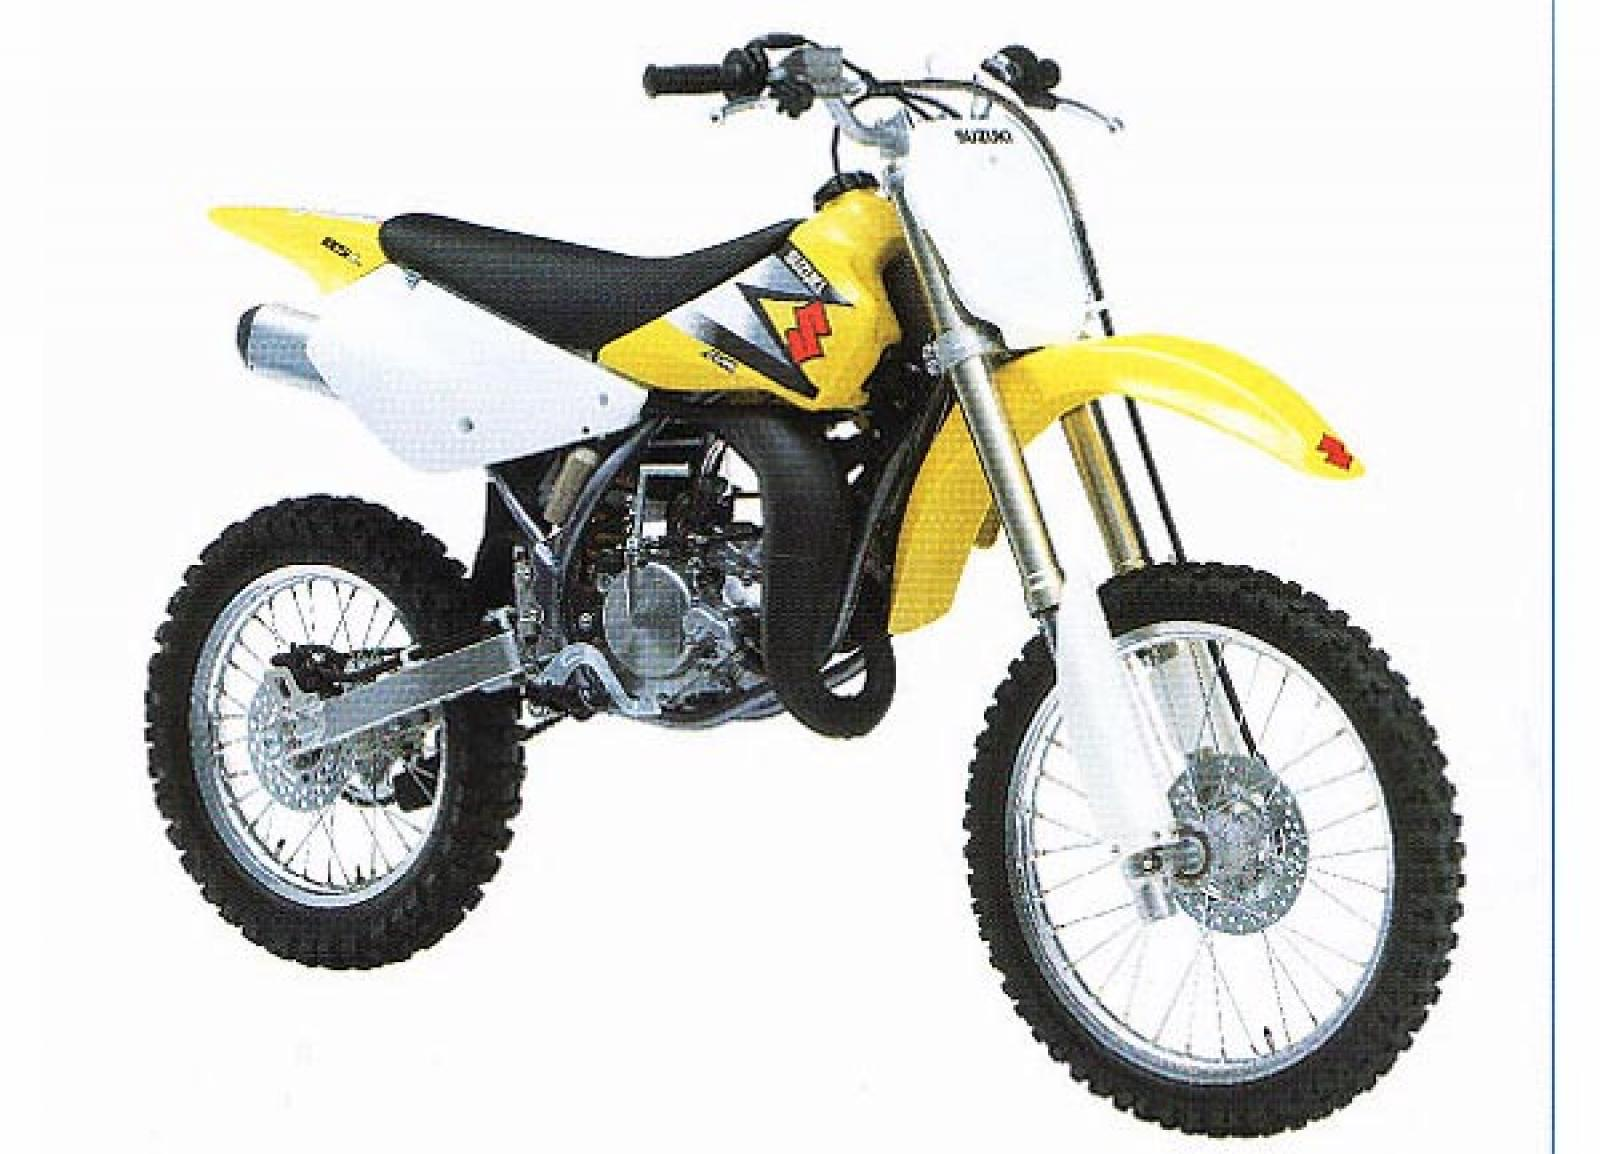 Picture credits yamaha click to submit more pictures - 2003 Suzuki Rm 85 L Gallery